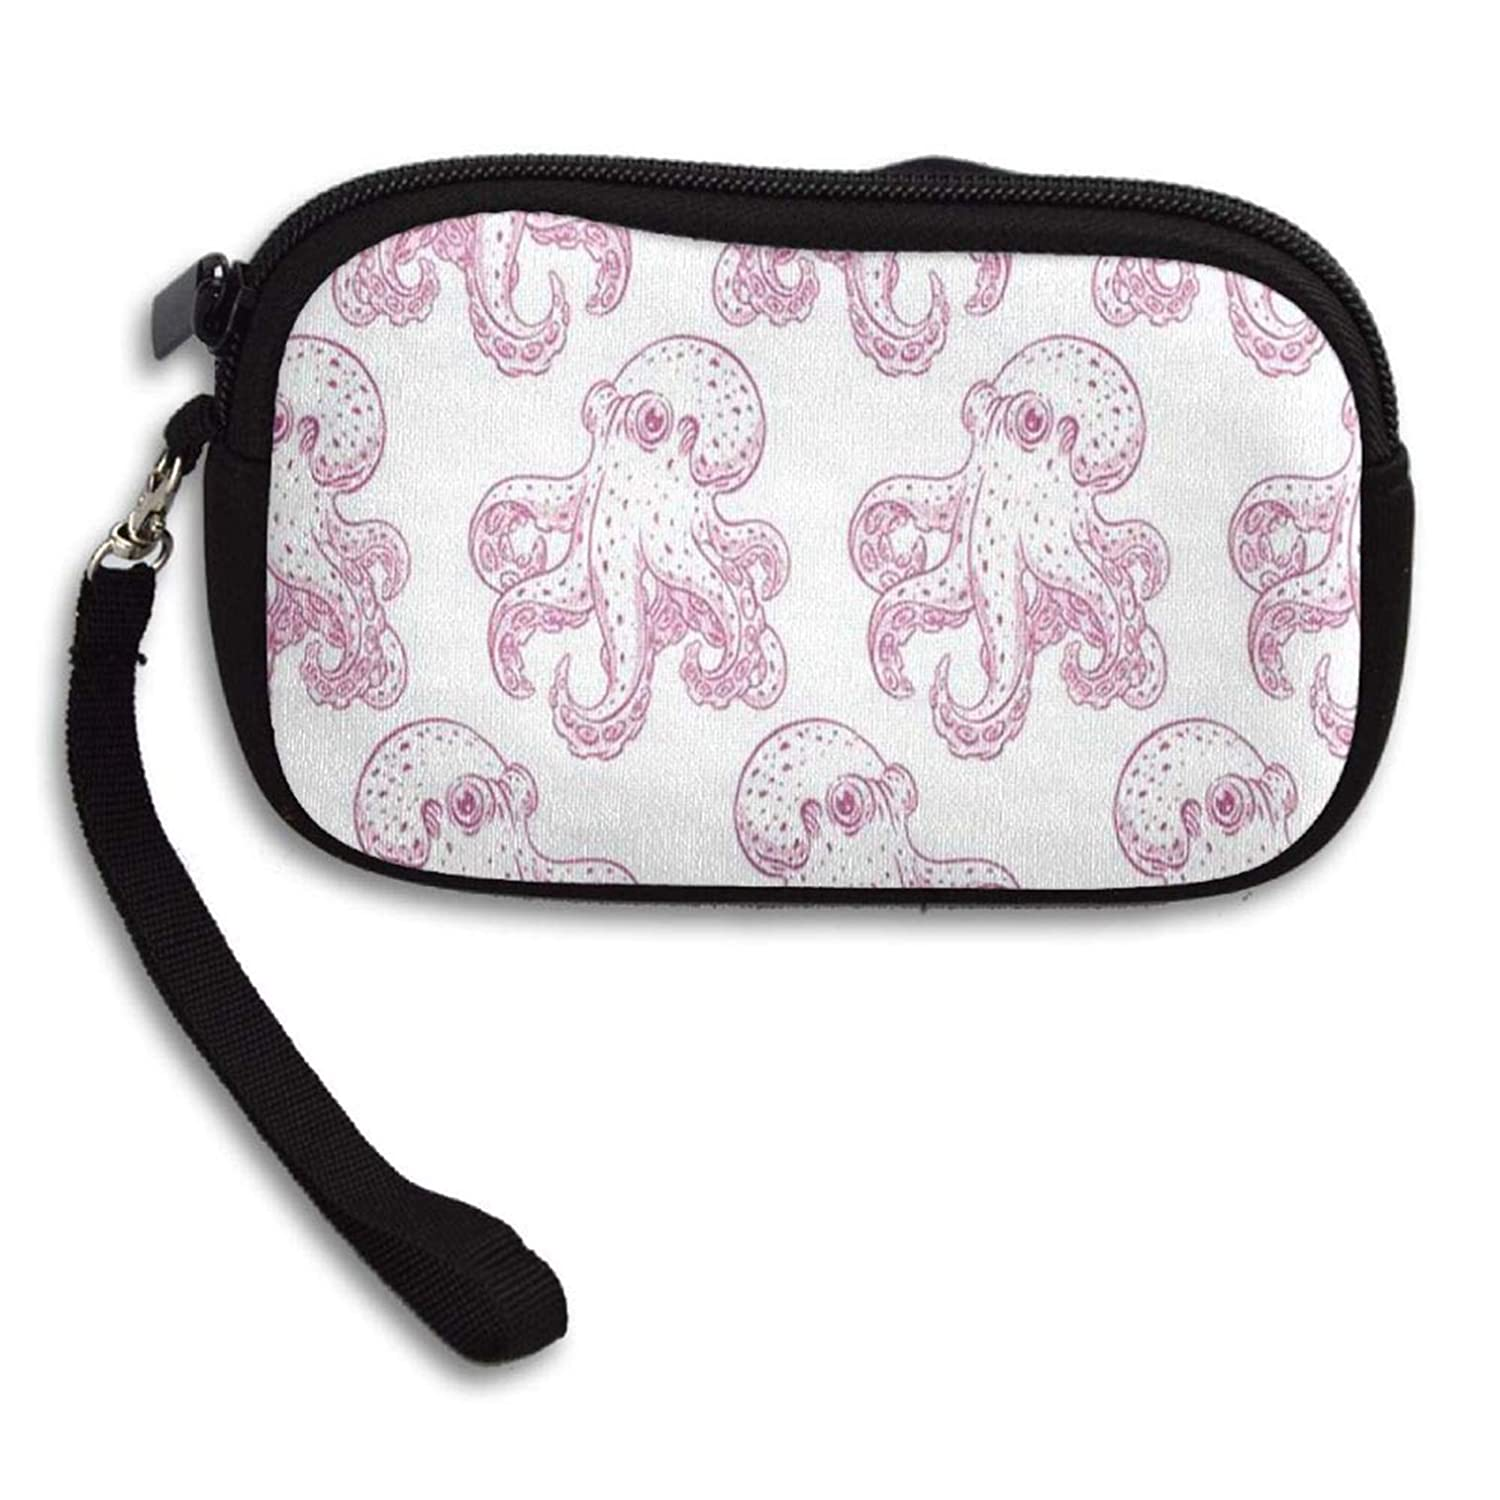 Gold Coin Purse Zip Mini Pocket Book Change Cash Bag with Regard to Men /& Women Easy Style Pink Octopus